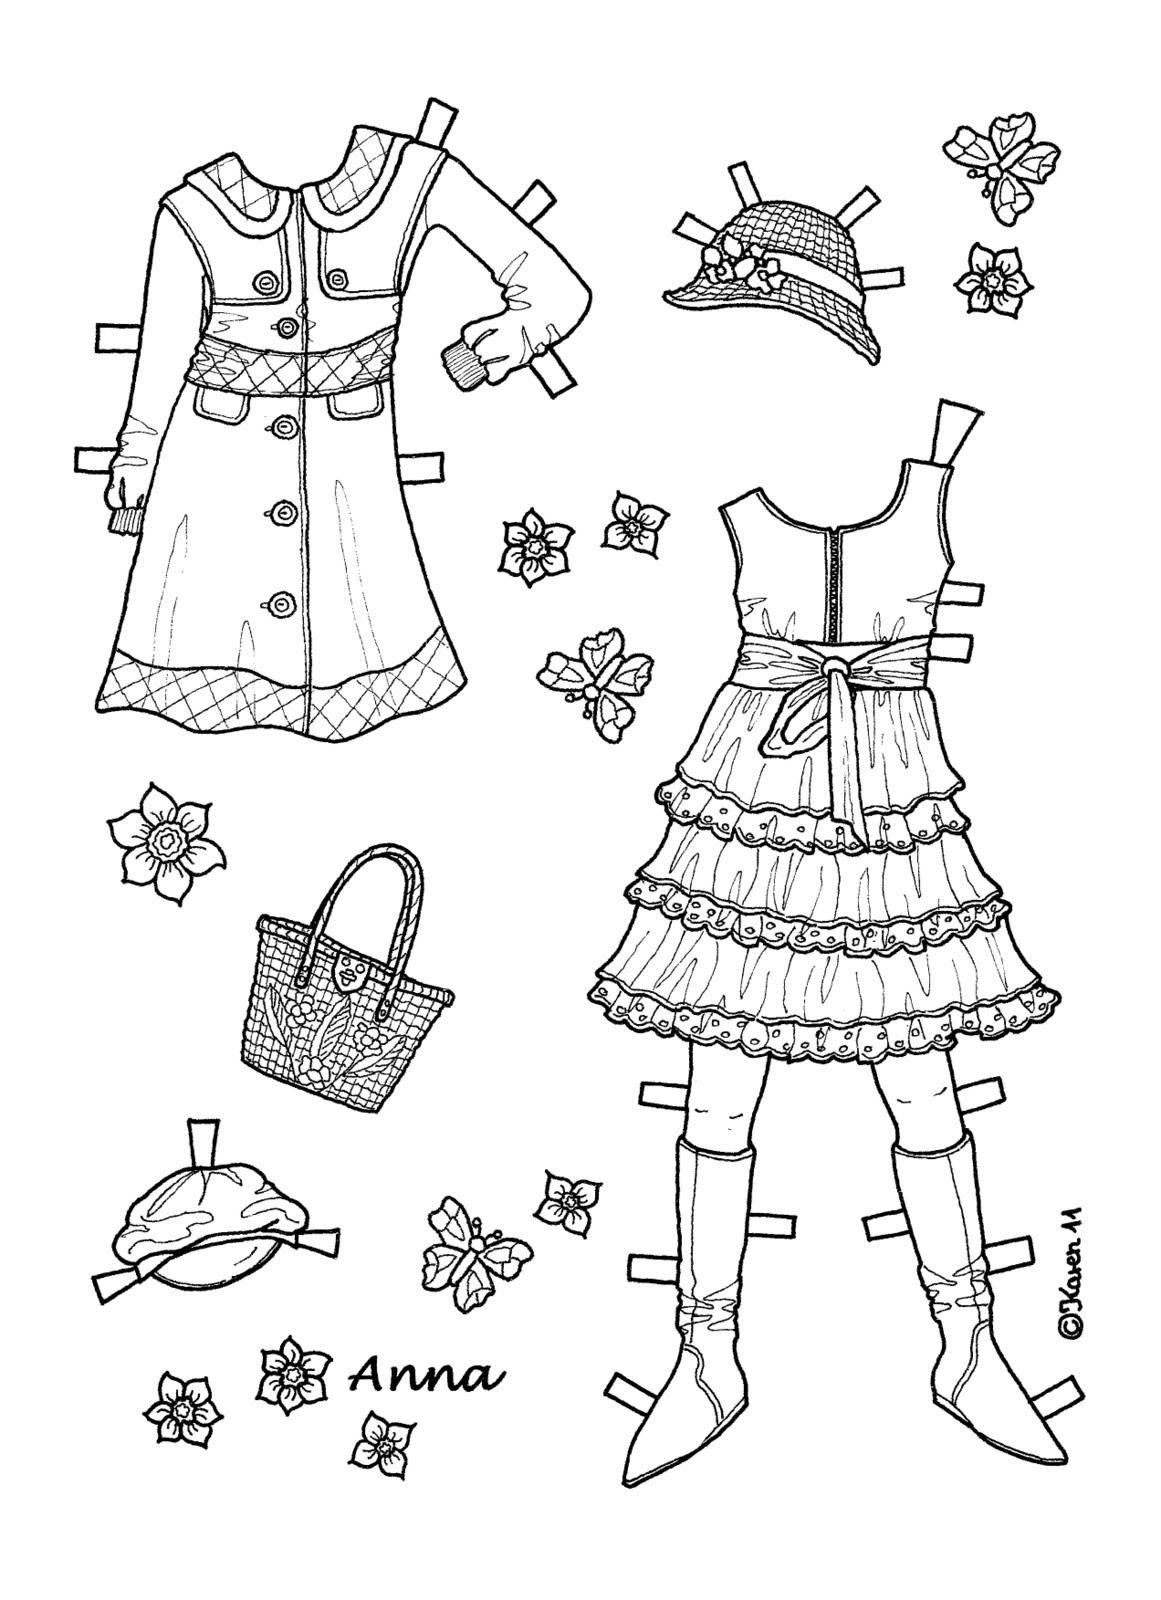 Karen`s Paper Dolls: Anna 1-6 Paper Doll to Print and